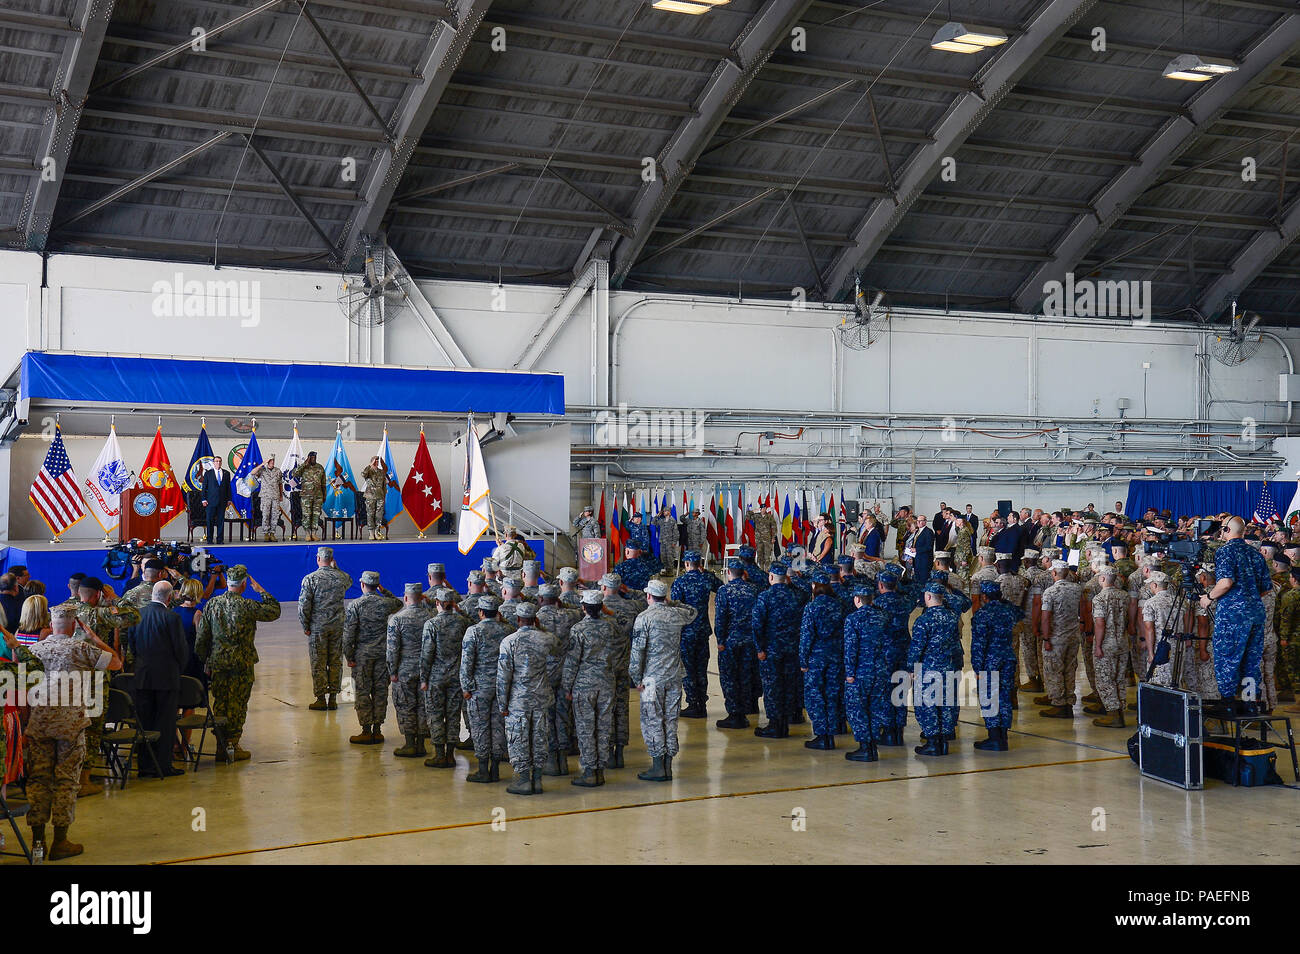 Service members render a salute during the presentation of the colors and the singing of the National Anthem at the U.S. Central Command change of command ceremony at MacDill Air Force Base, Fla., March 30, 2016. Defense Secretary Ash Carter officiated the change of command ceremony, which attracted more than 1,000 attendees, including Joint Chiefs of Staff chairman U.S. Marine Gen. Joseph F. Dunford, Central Command's component commanders, community leaders and senior coalition representatives. (U.S. Air Force photo by Senior Airman Ned T. Johnston) Stock Photo